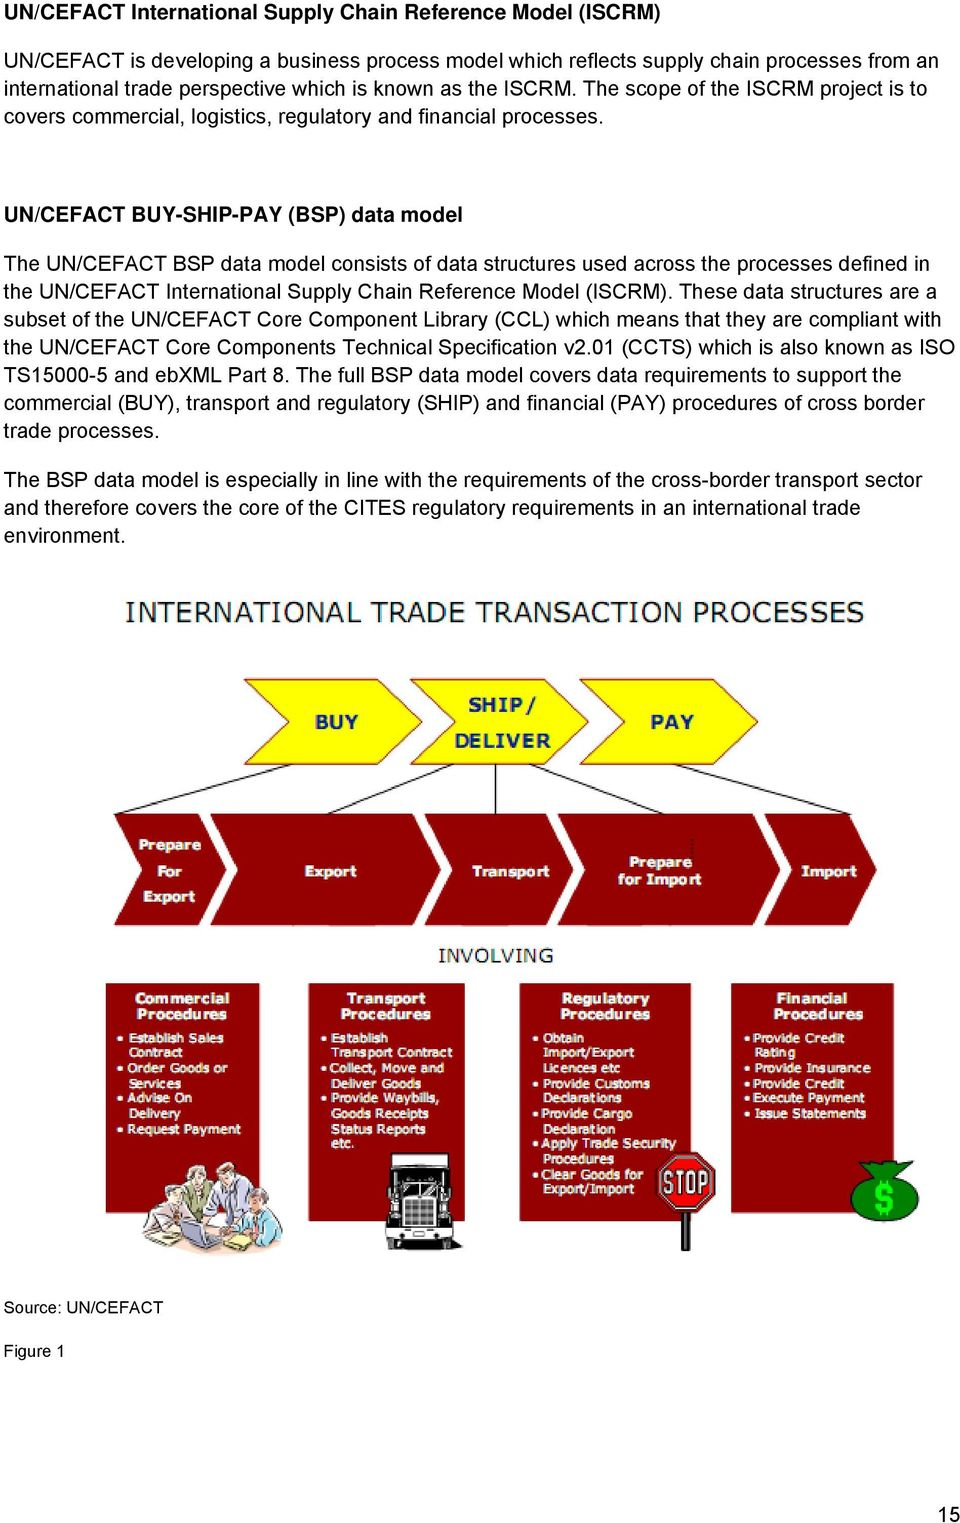 UN/CEFACT BUY-SHIP-PAY (BSP) data model The UN/CEFACT BSP data model consists of data structures used across the processes defined in the UN/CEFACT International Supply Chain Reference Model (ISCRM).